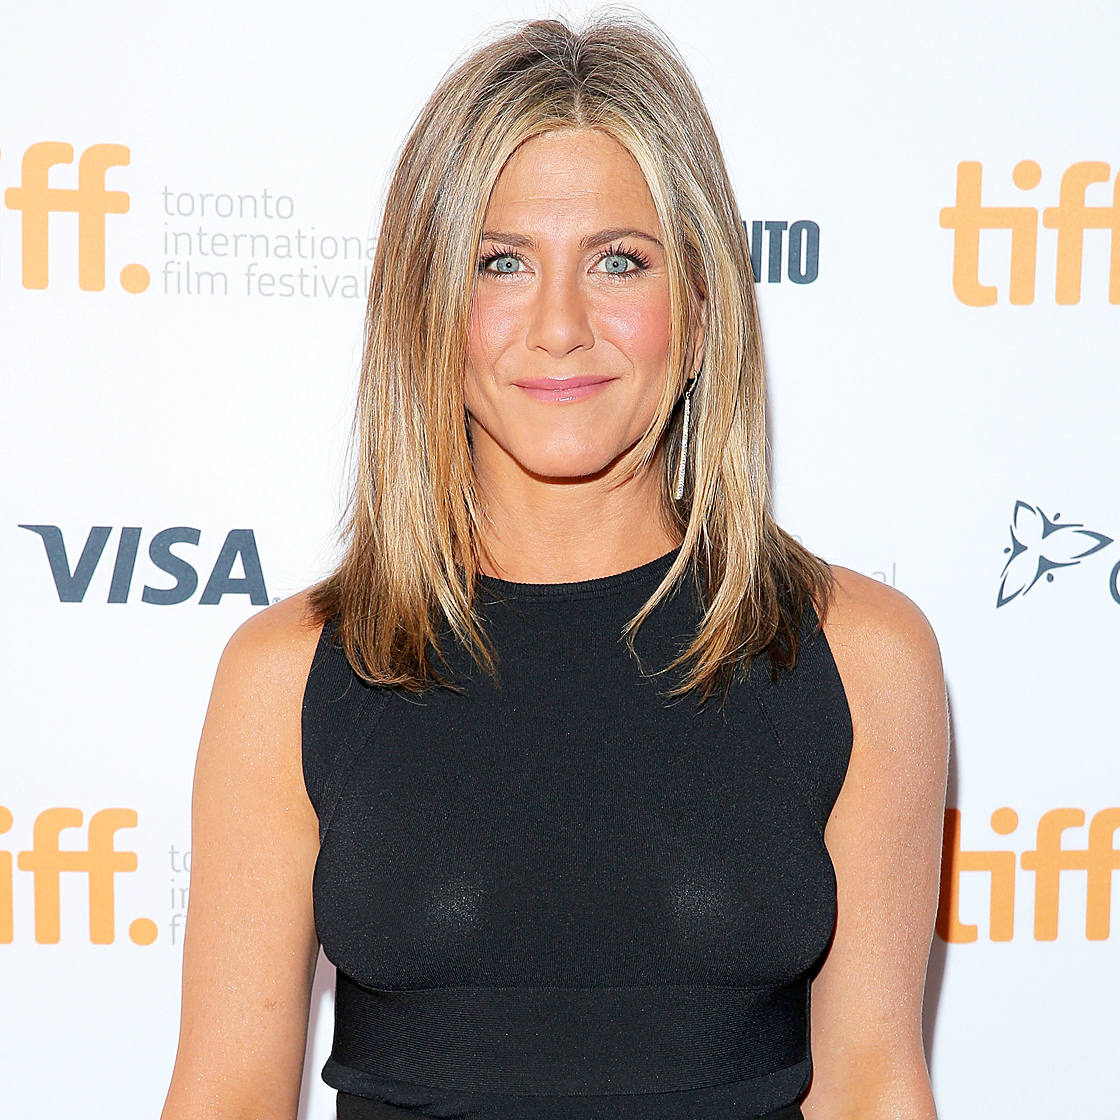 The megastar — who split from Pitt in 2005 — has been hard at work since ditching her famous Rachel hairstyle. Aniston's starred in big-screen roles with box office hits and awards-season darlings, including He's Just Not That Into You , Marley & Me , We're the Millers , Horrible Bosses , Cake and Dumplin' .